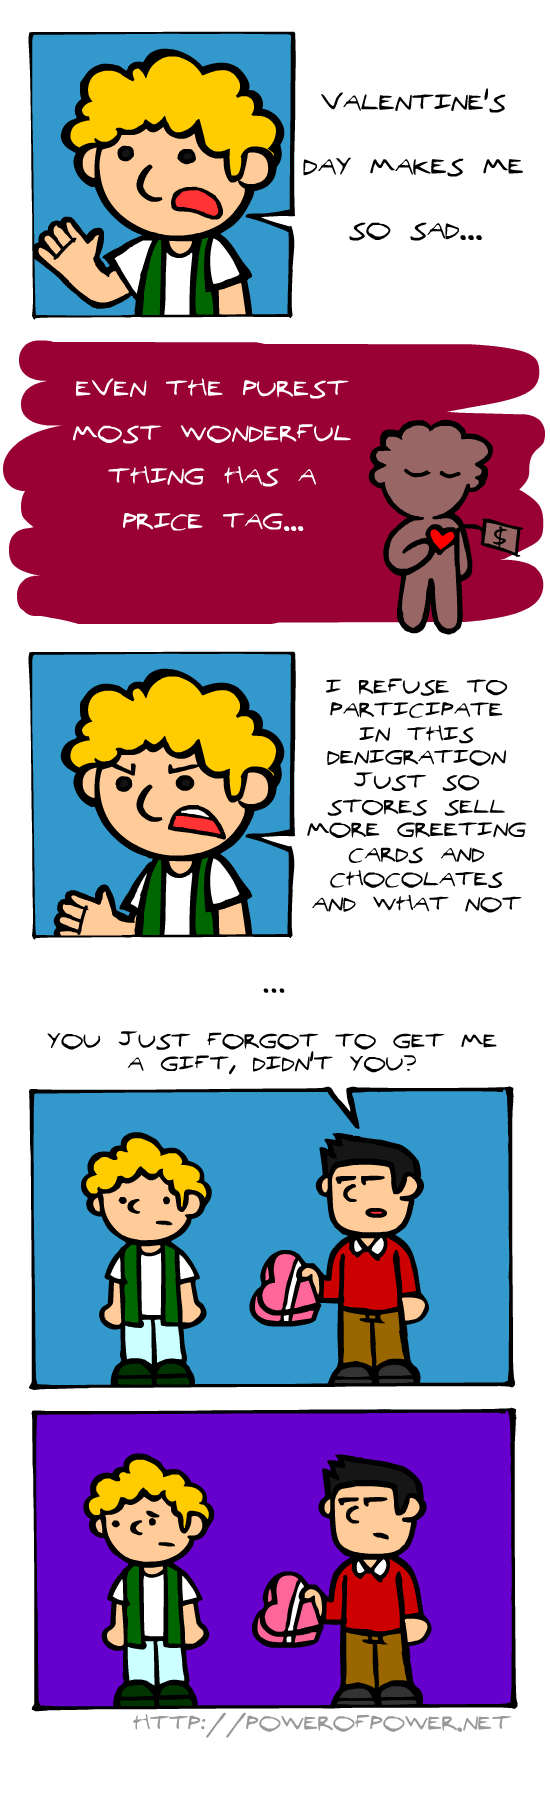 commercialism web comics Valentines day - 8750843648